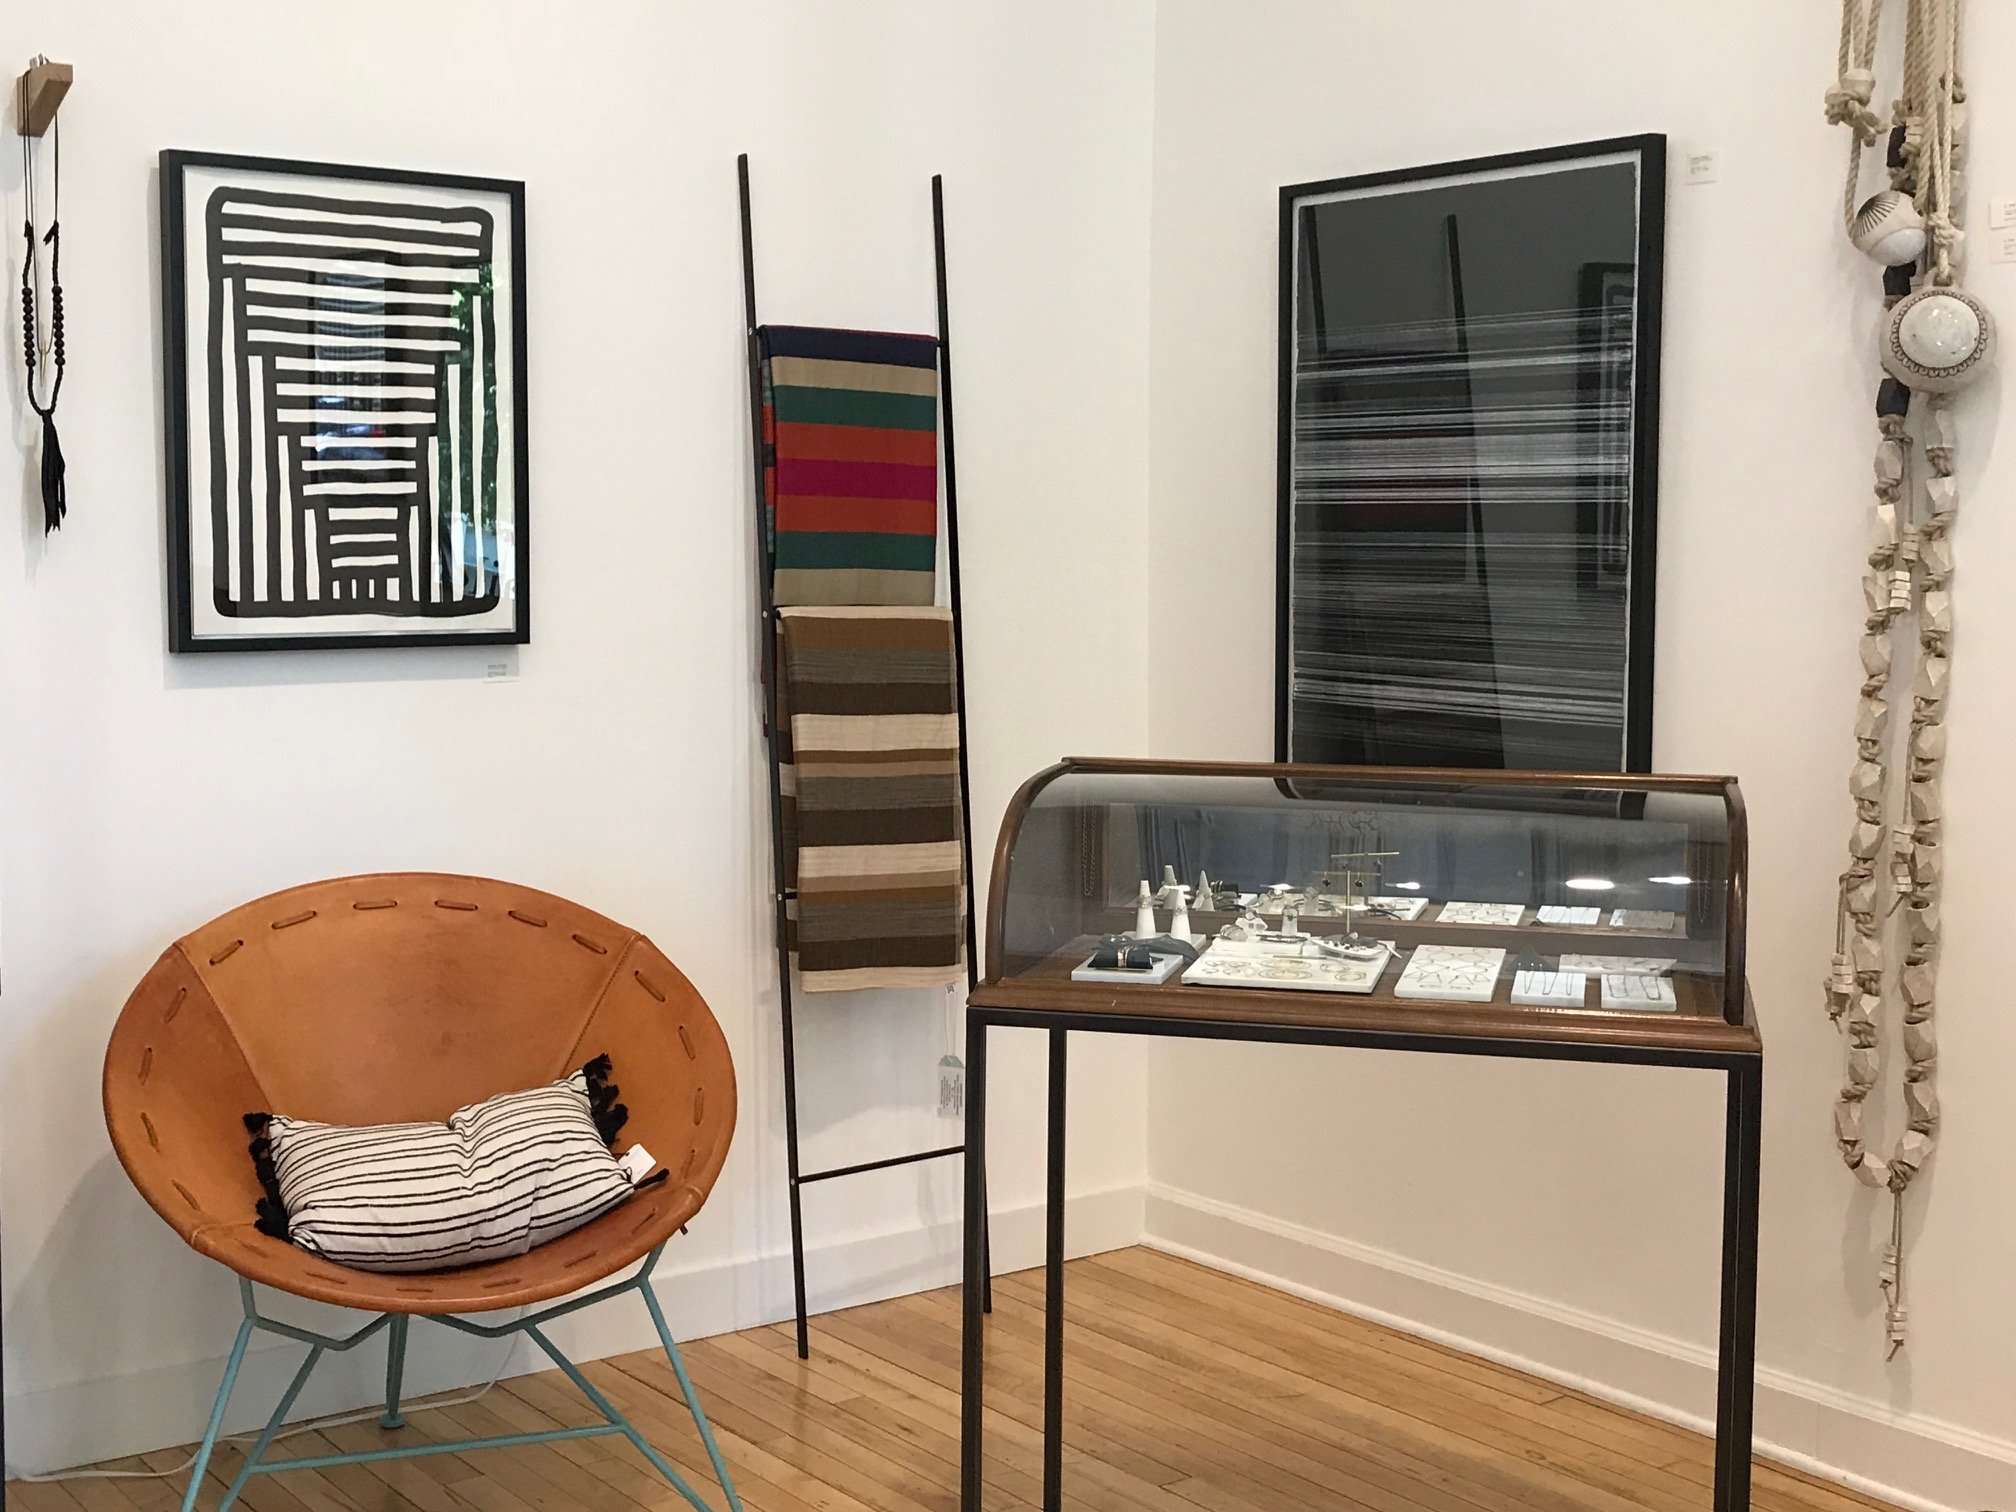 Artwork by Michael McGuire, striped blankets by Garza Marfa, and wall hangings by MQuan Studio